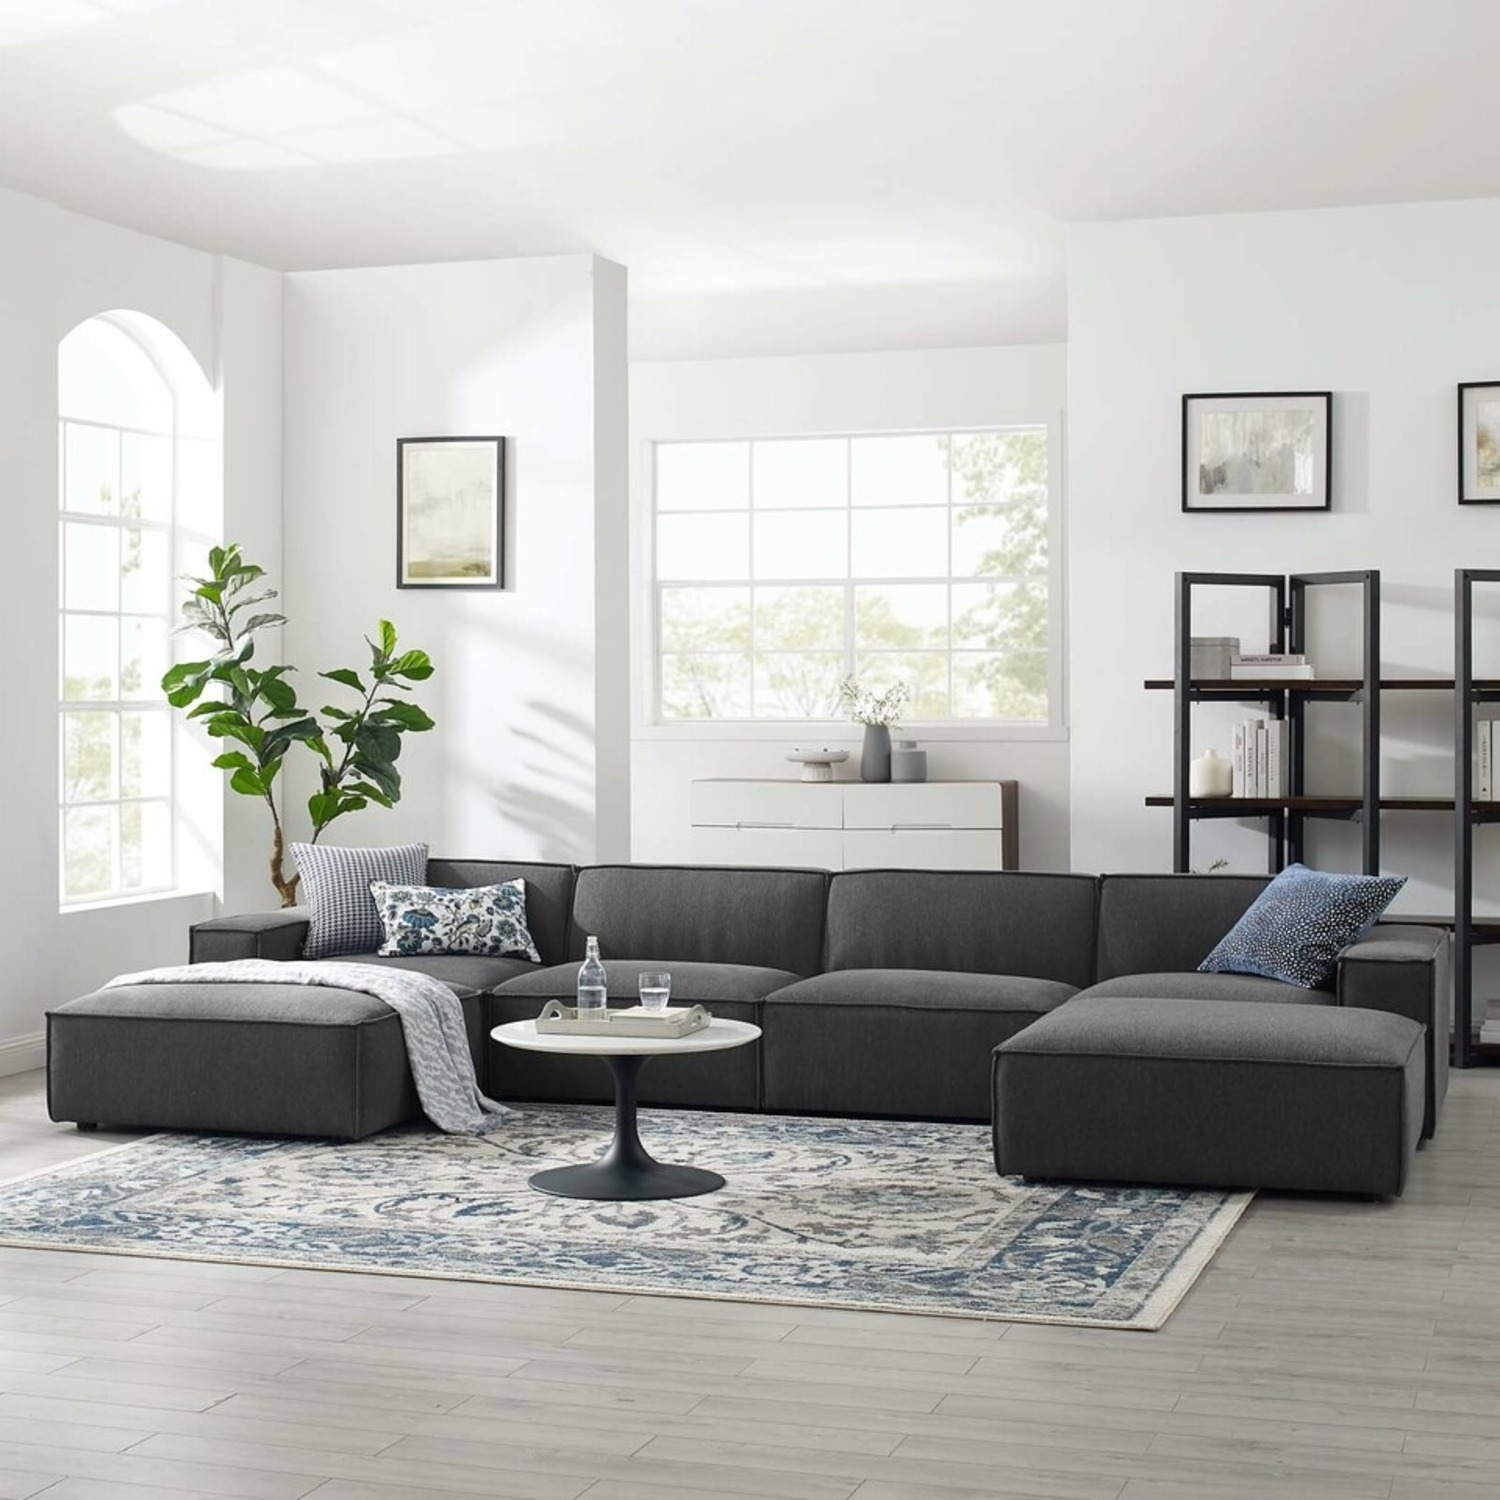 6-Piece Sectional Sofa In Charcoal Upholstery - image-10